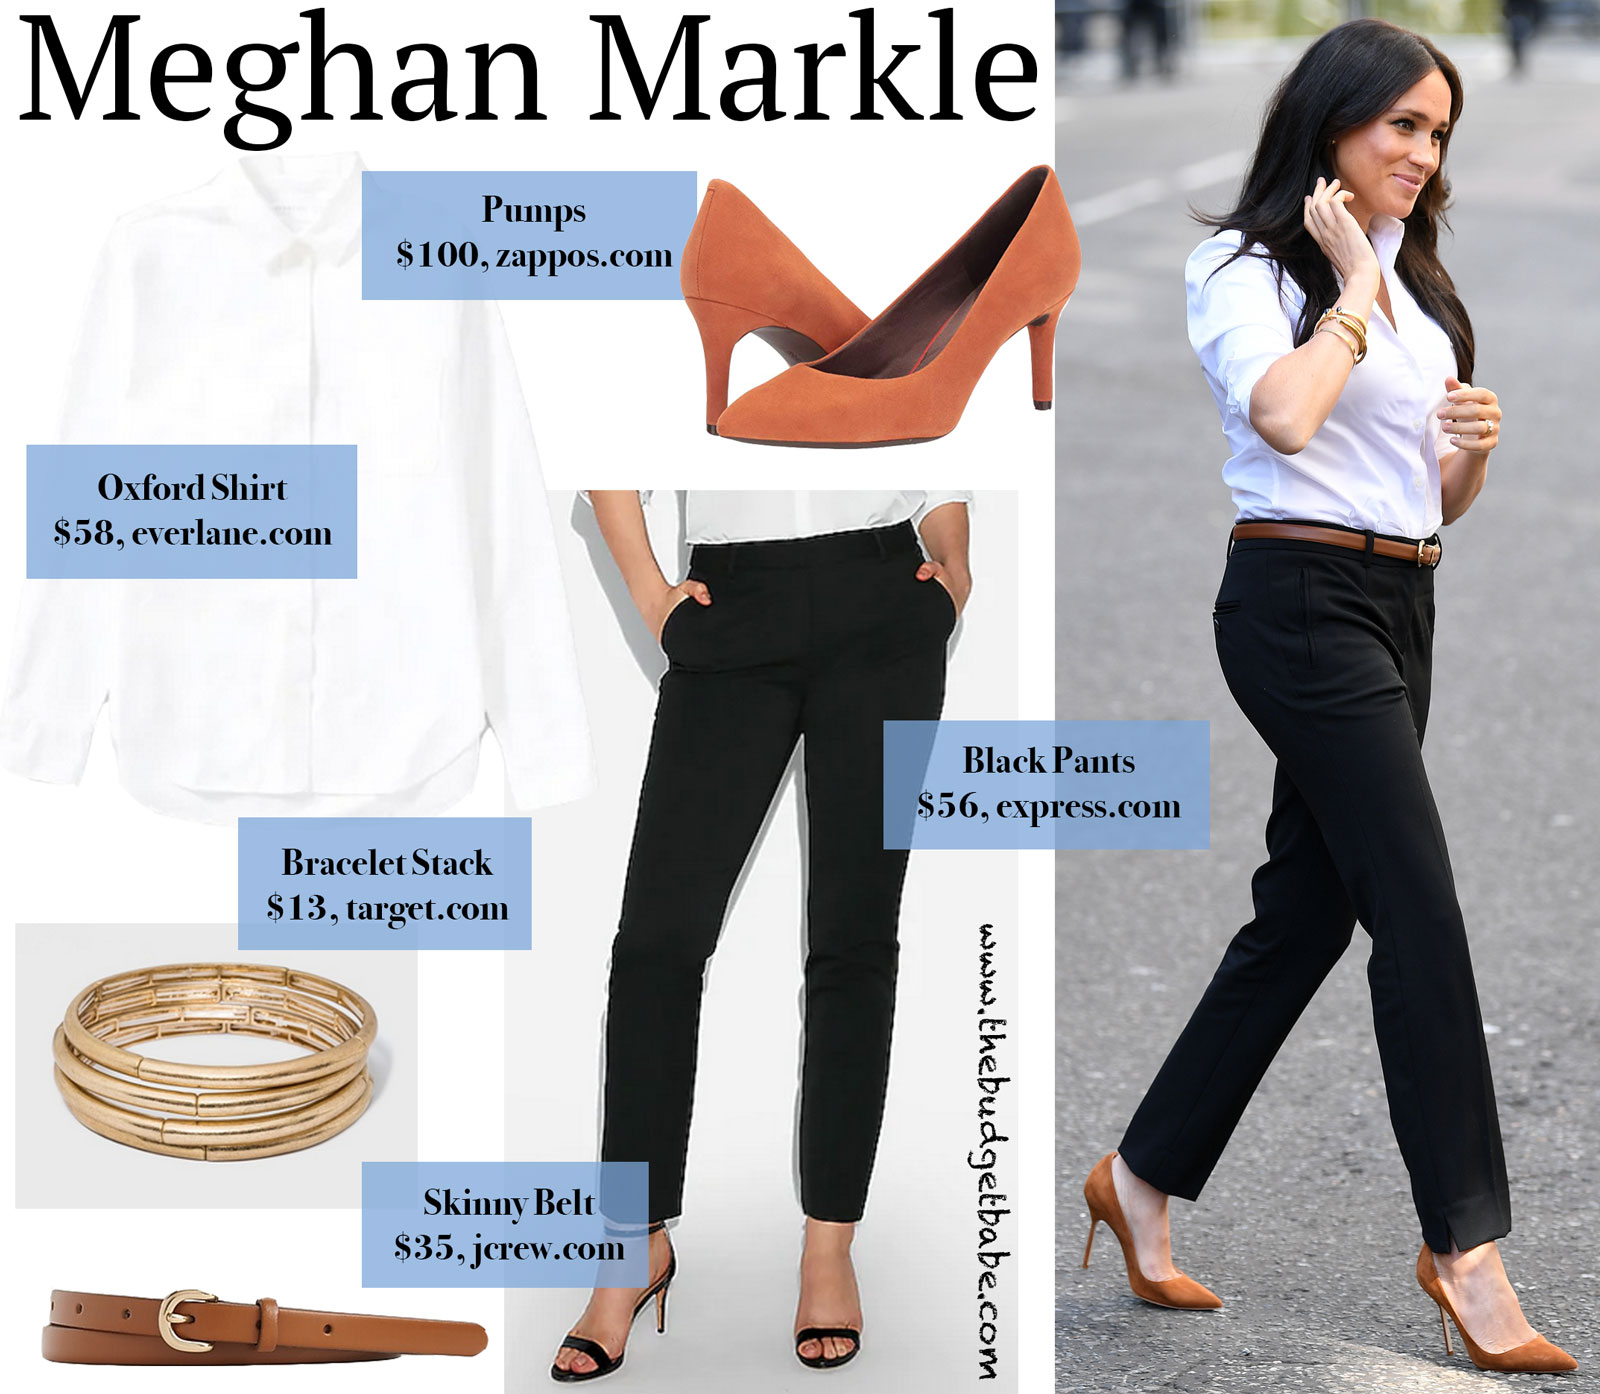 Meghan Markle in The Smart Set and Manolos Look for Less